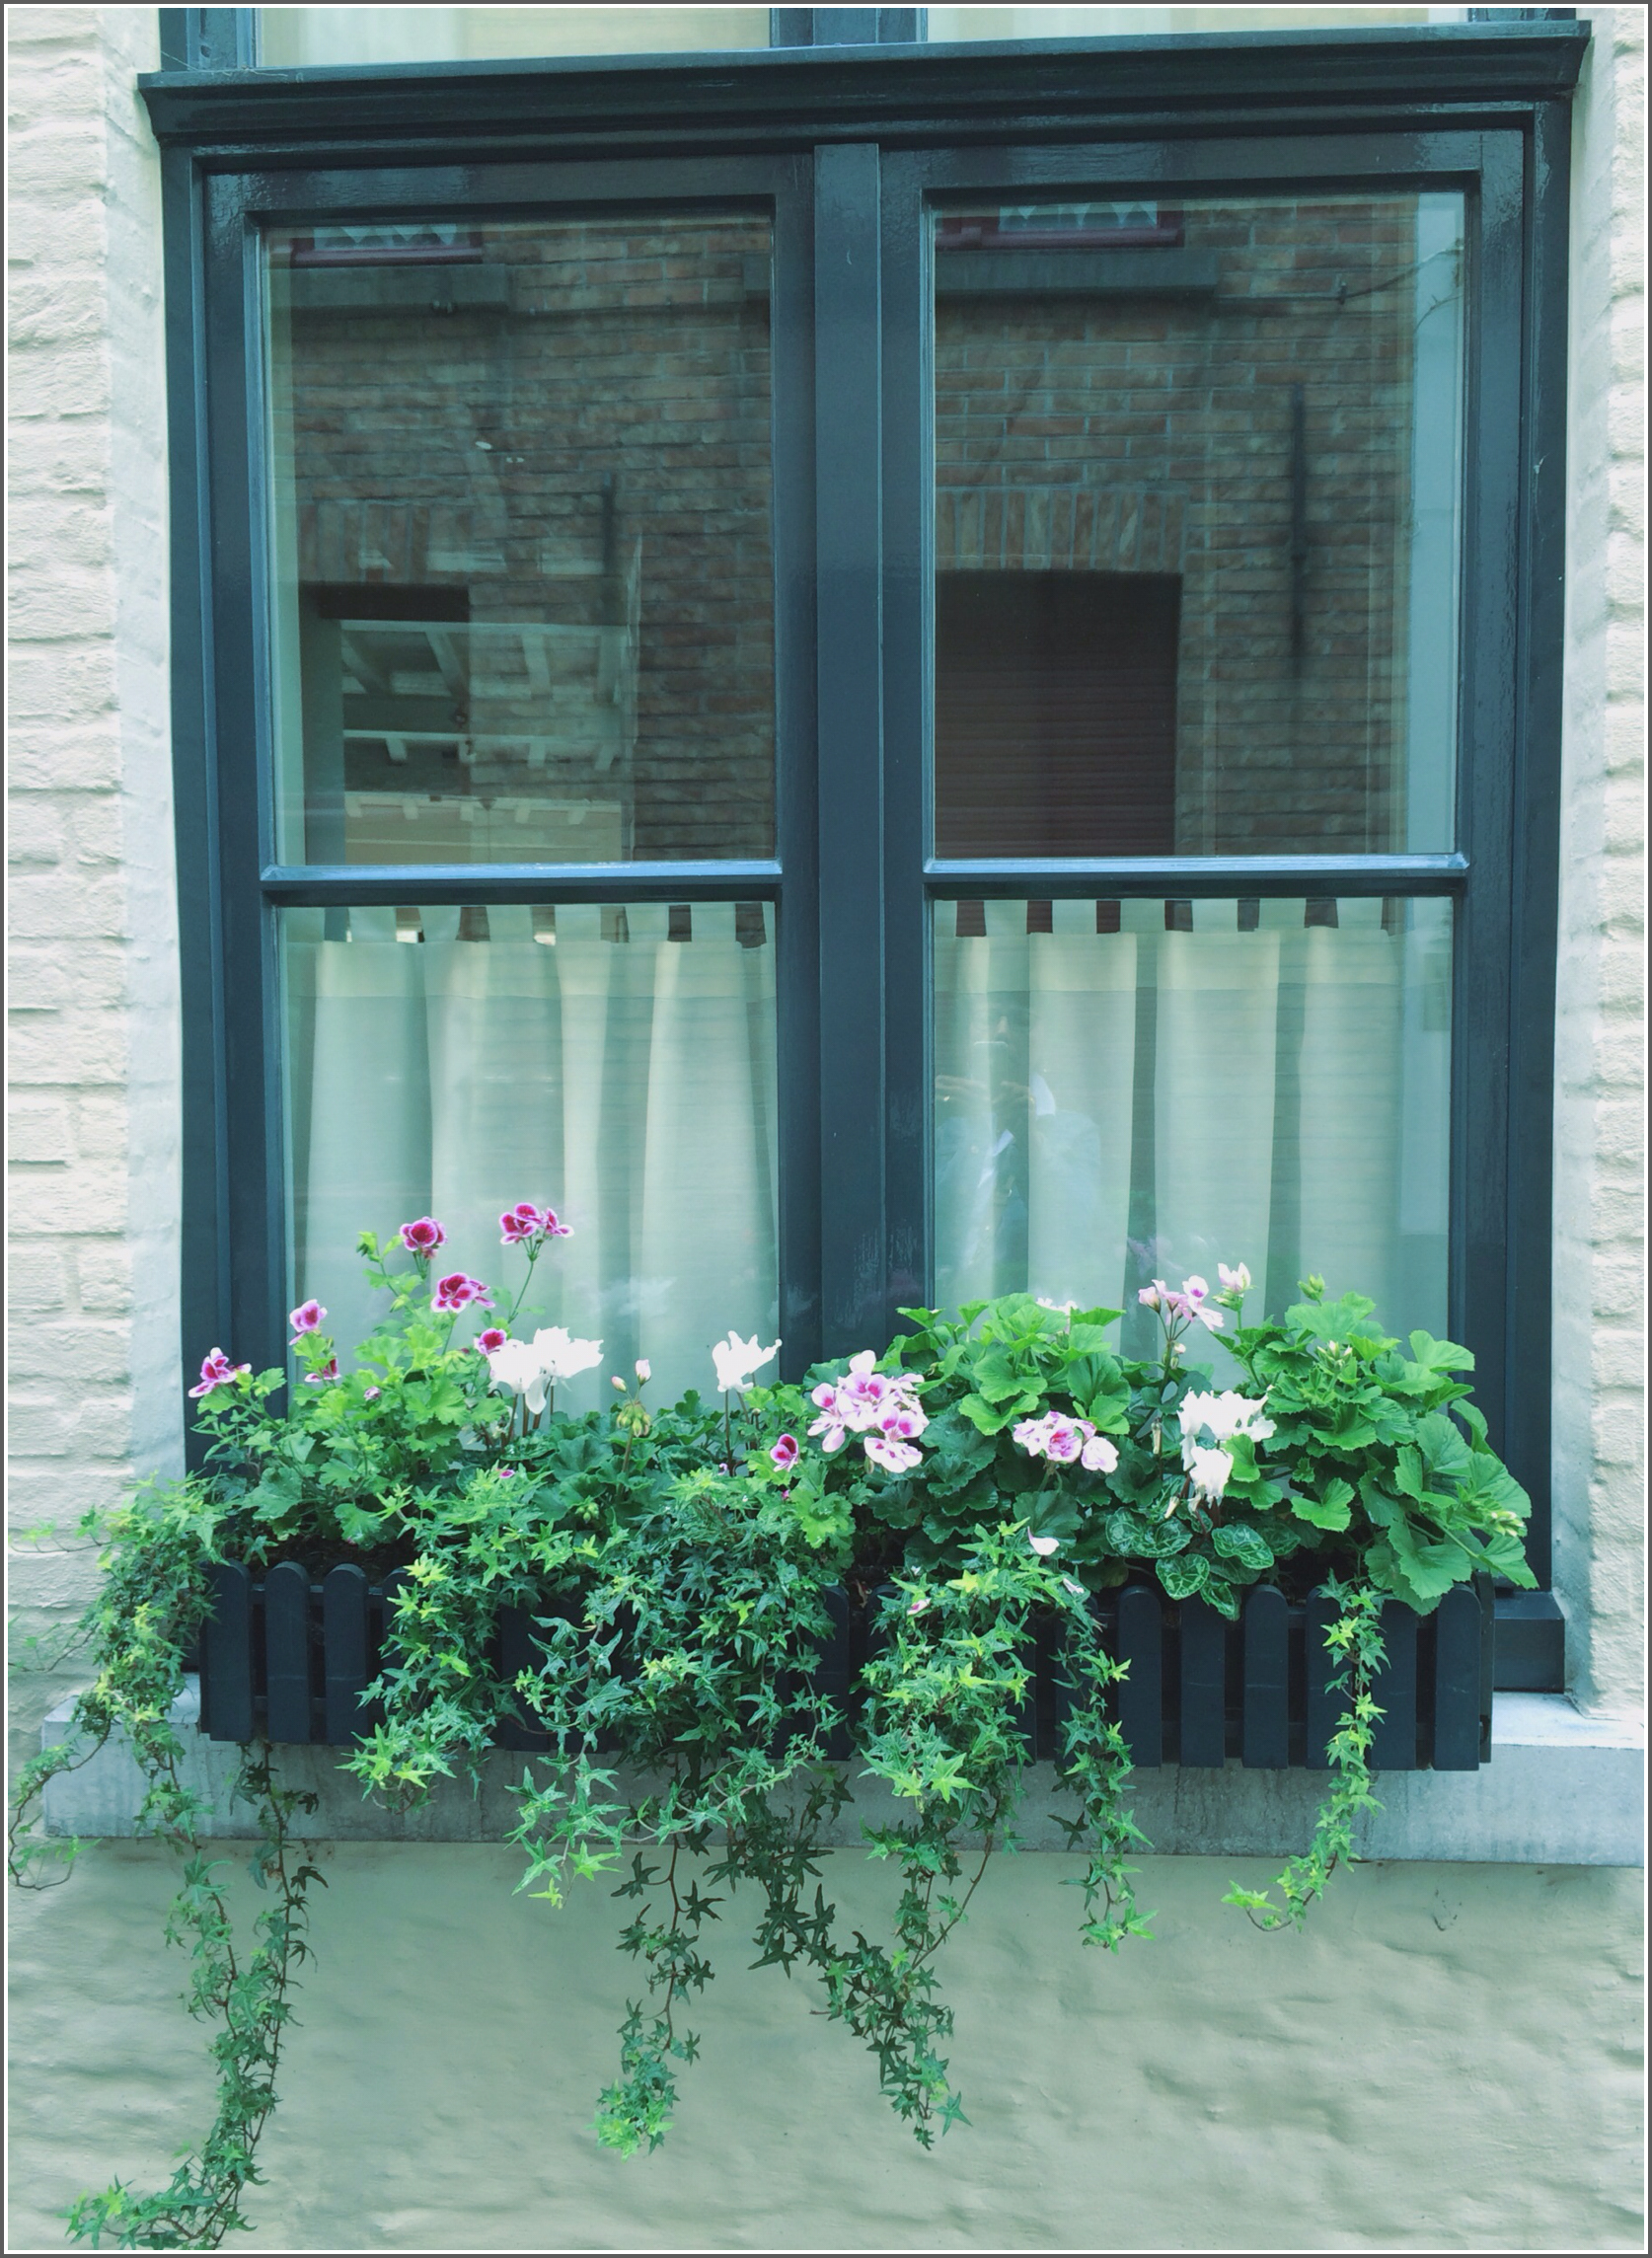 Bruges Window Box by Dena T. Bray